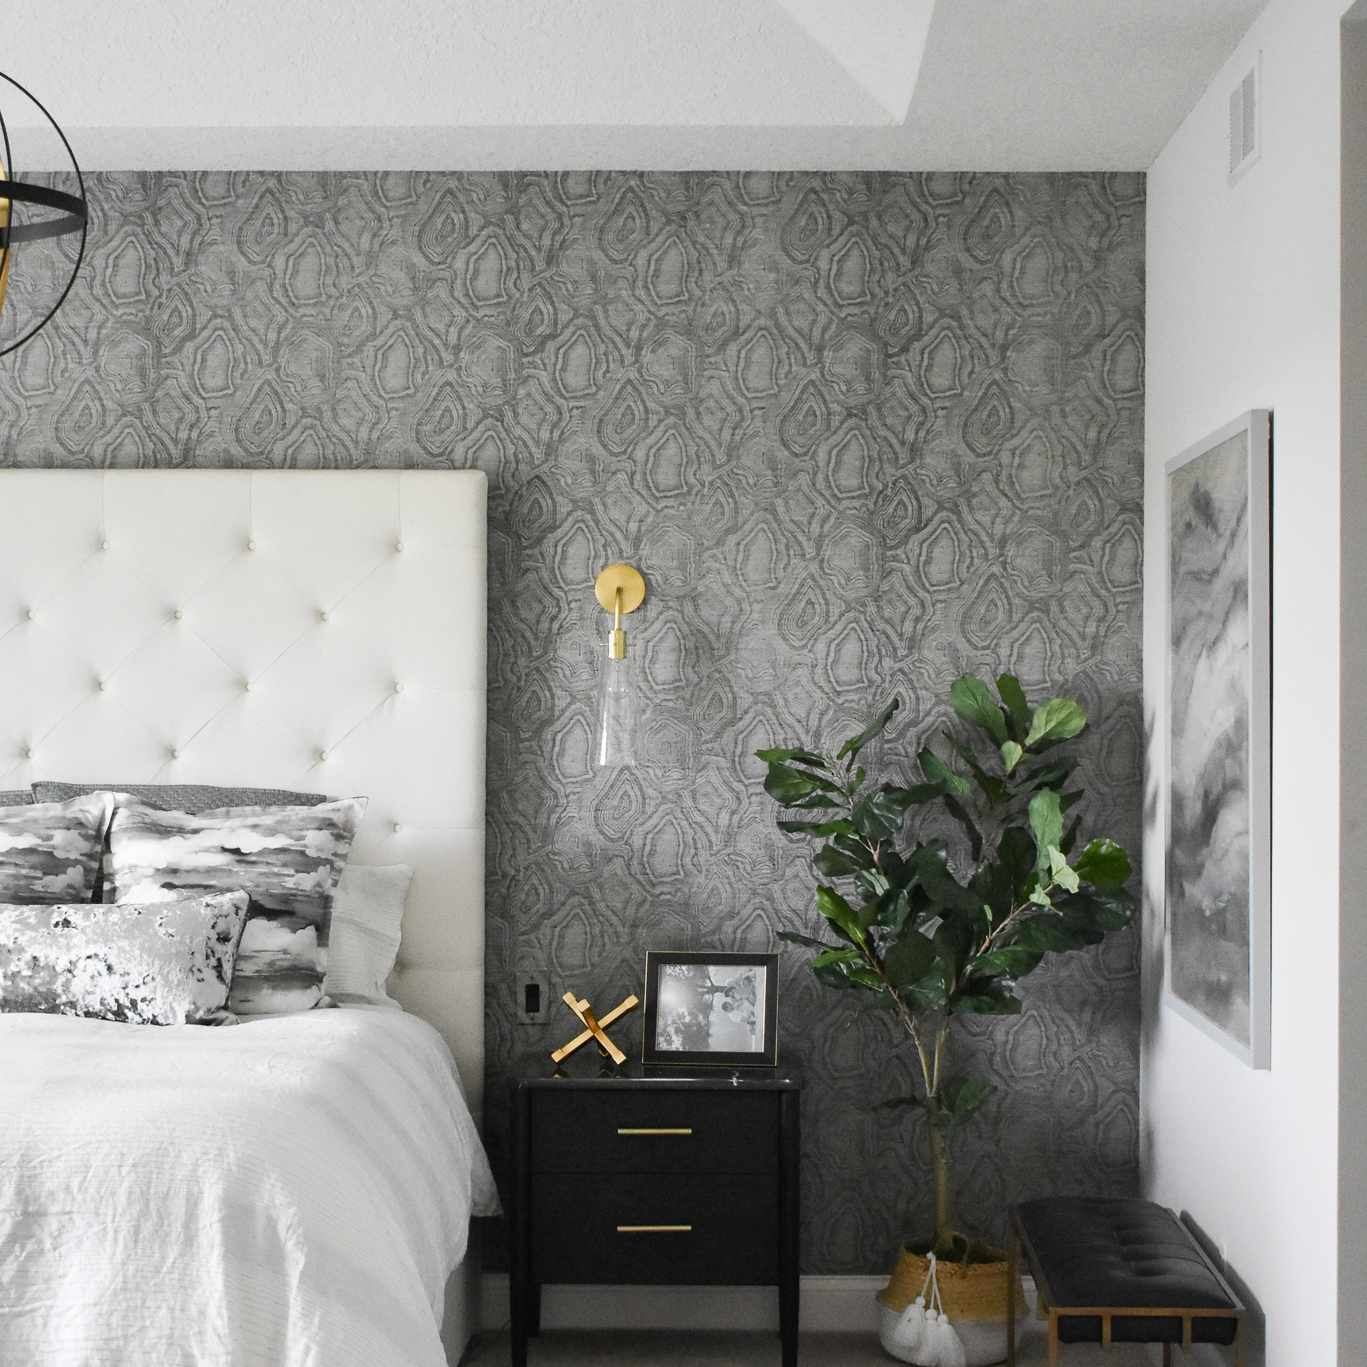 After shot of bedroom with new wallpaper and chic furniture.